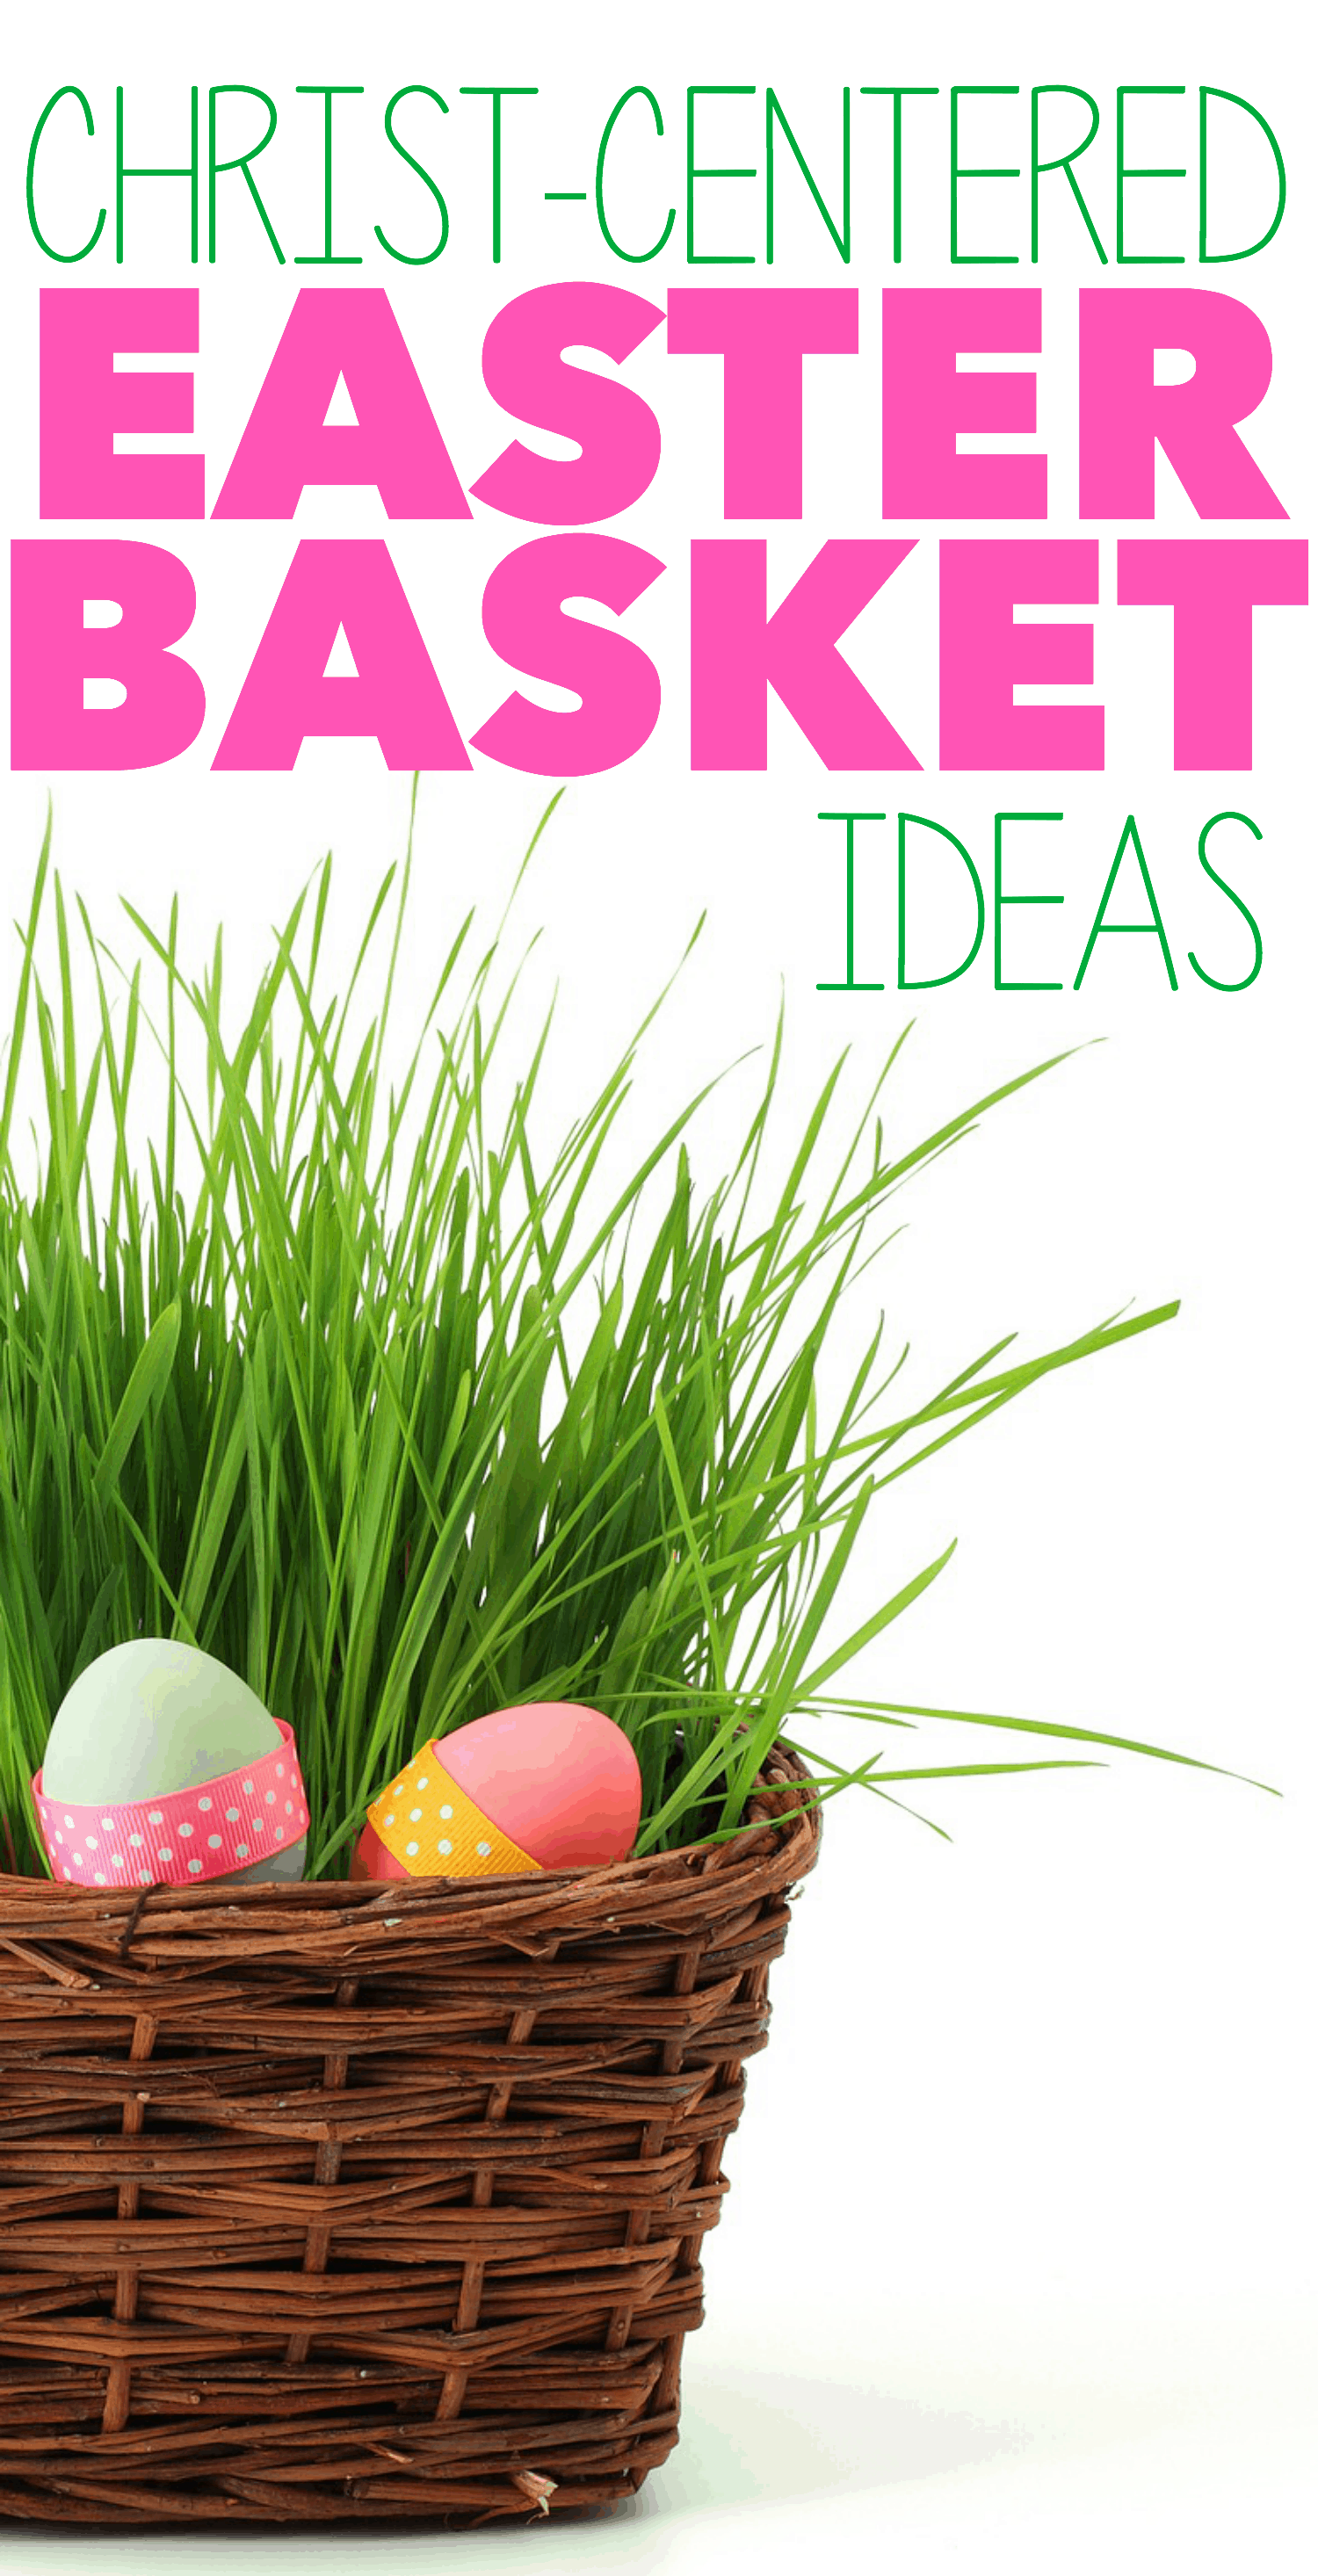 Centered easter basket ideas christ centered easter basket ideas negle Images